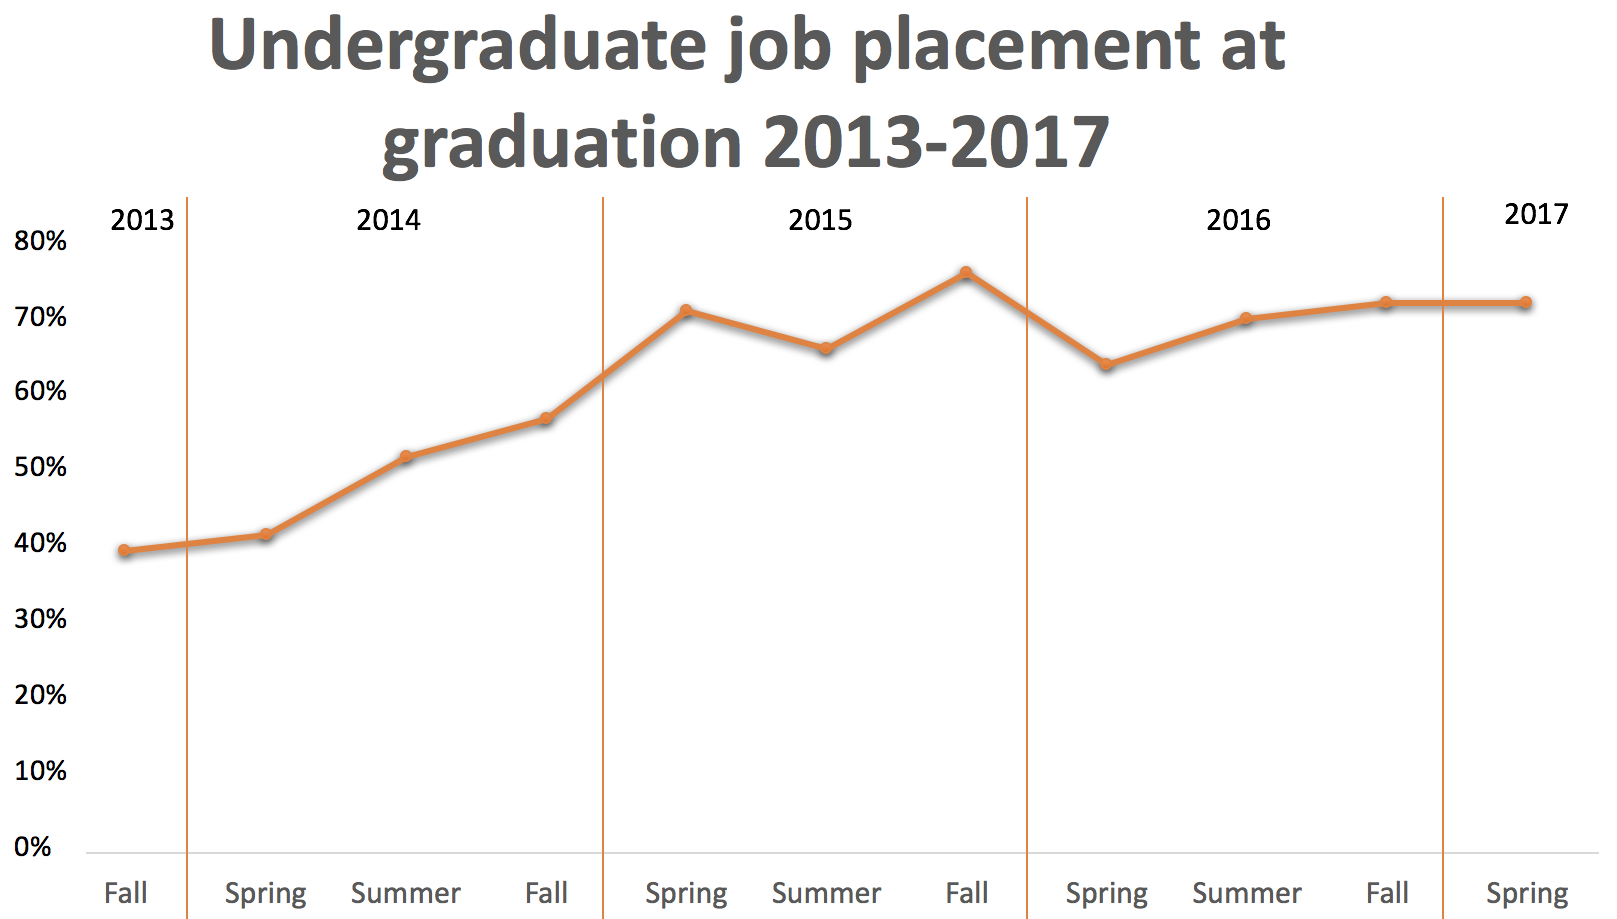 undergrad-job-placement-at-grad-2013-to-2017 PM